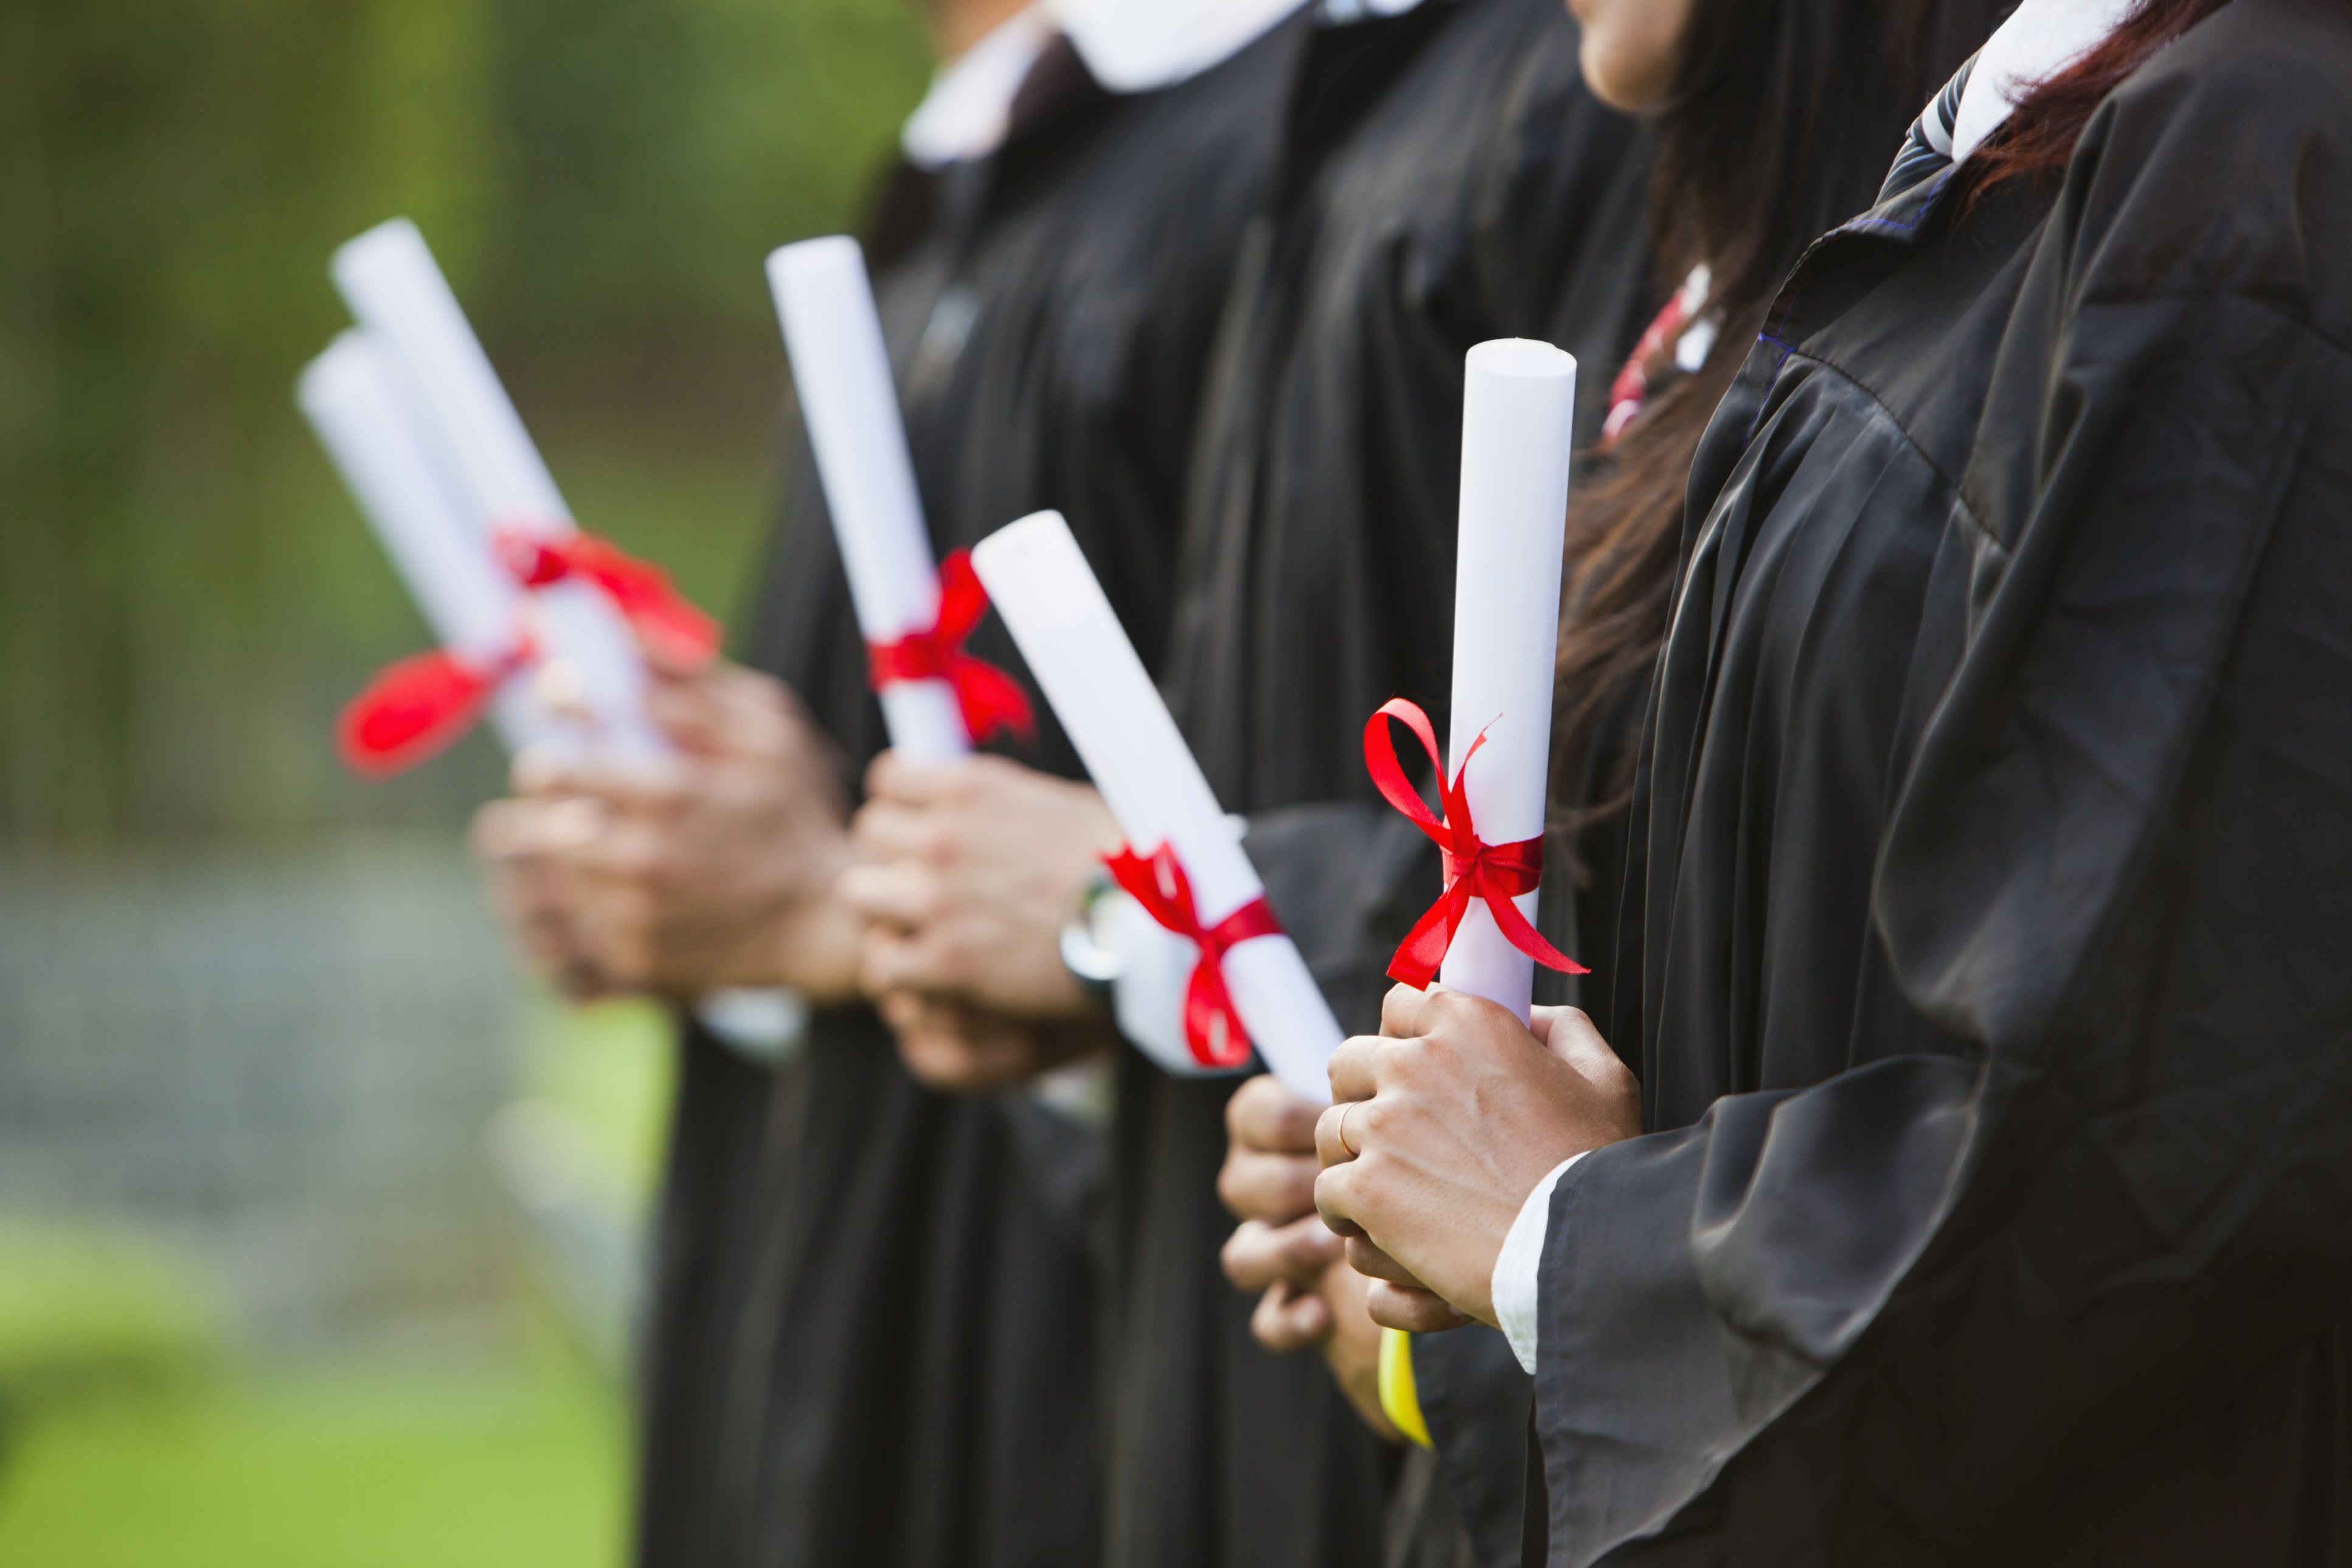 Todays Advice To Graduates No Selfies - Noselfies 9 places where selfies are banned